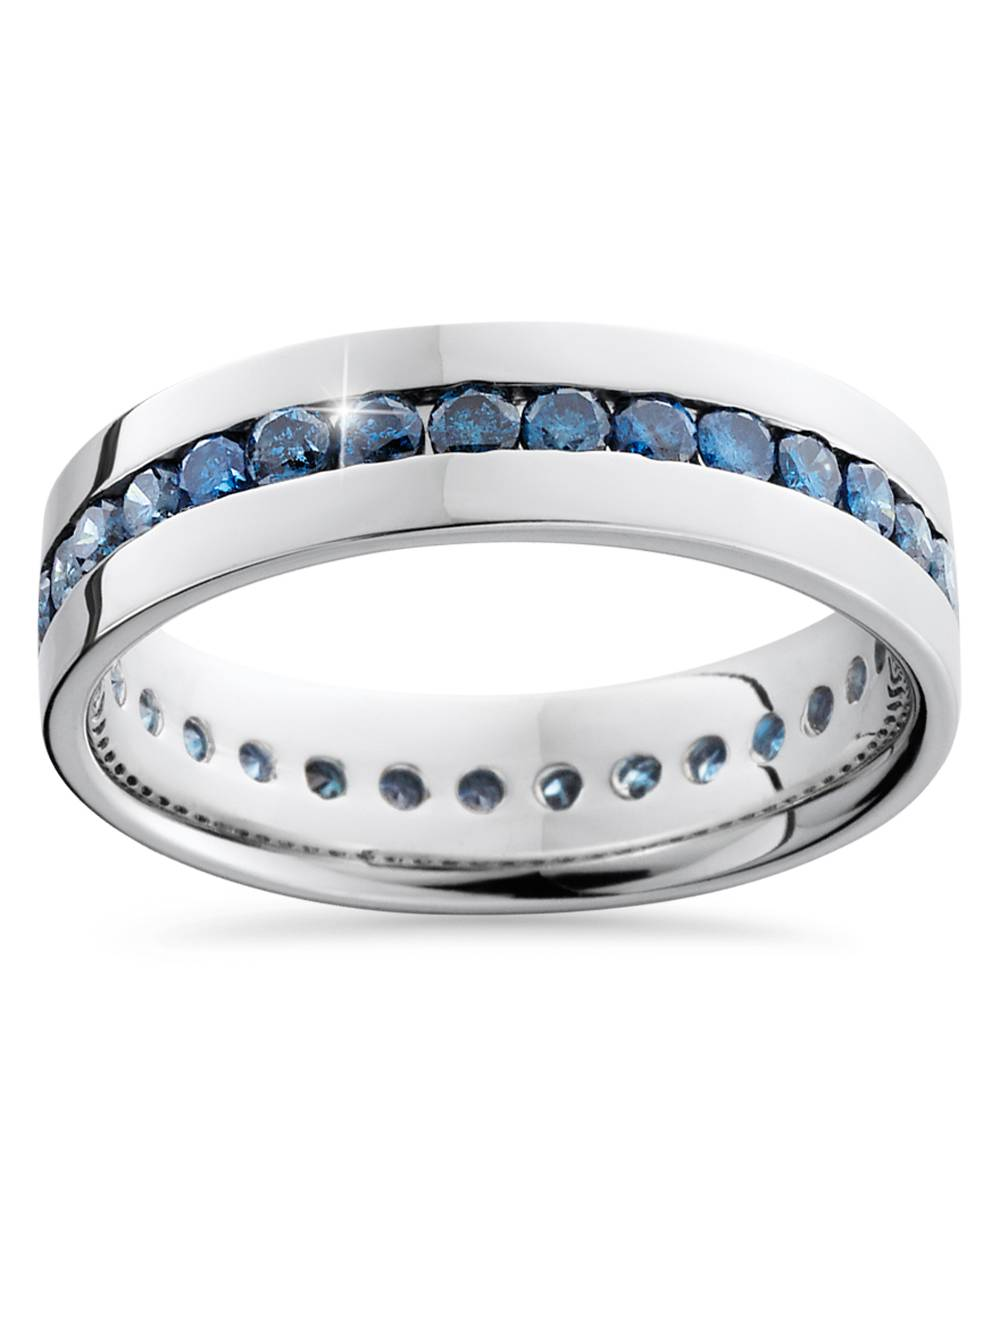 1 1 5ct Treated Blue Diamond Channel Set Eternity Ring 14K White Gold by Pompeii3